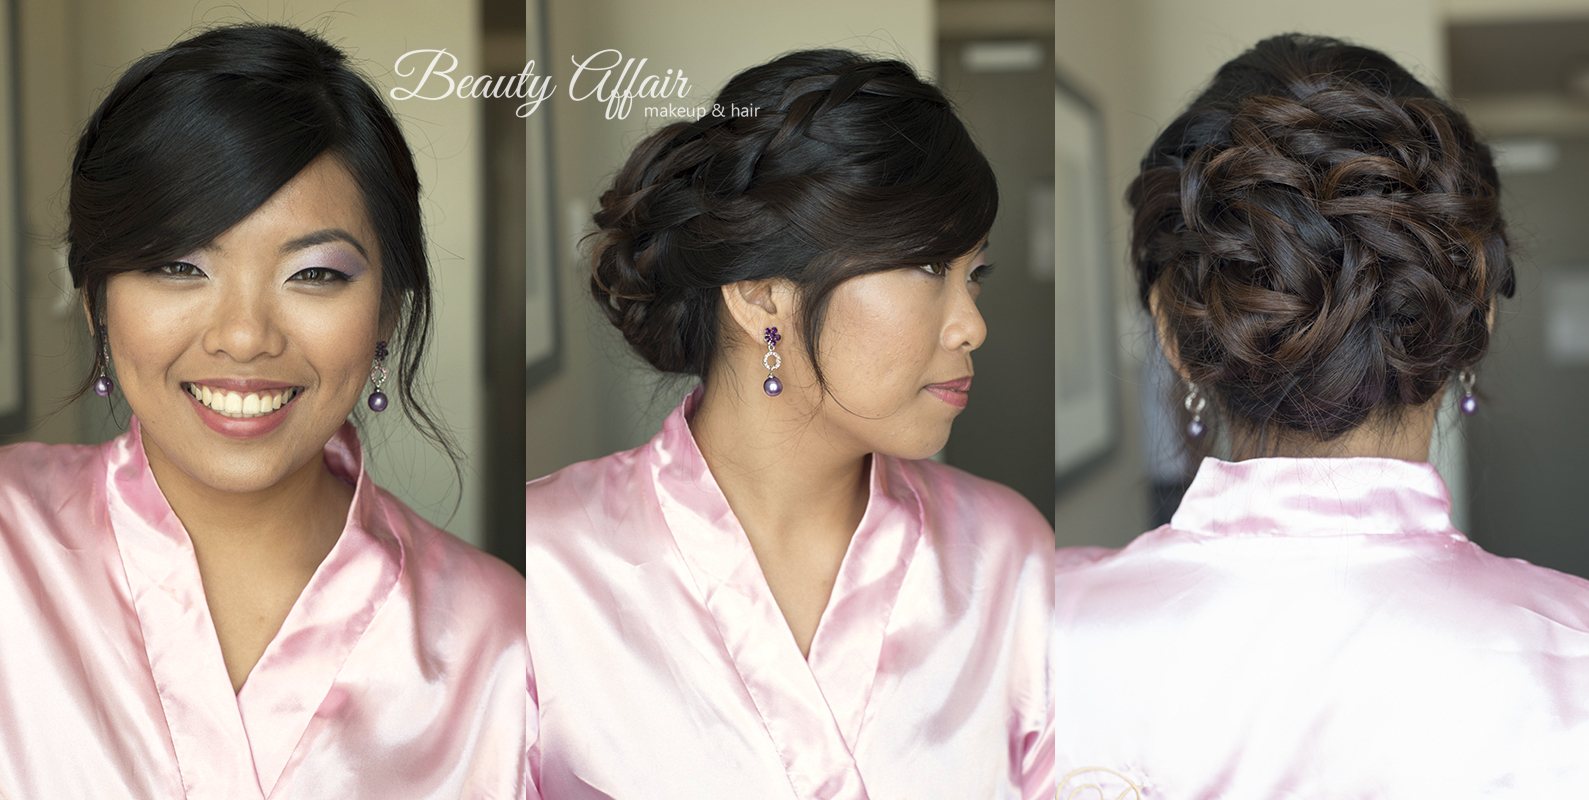 Beauty Affair makeup and hairstyling Los Angeles braid updo